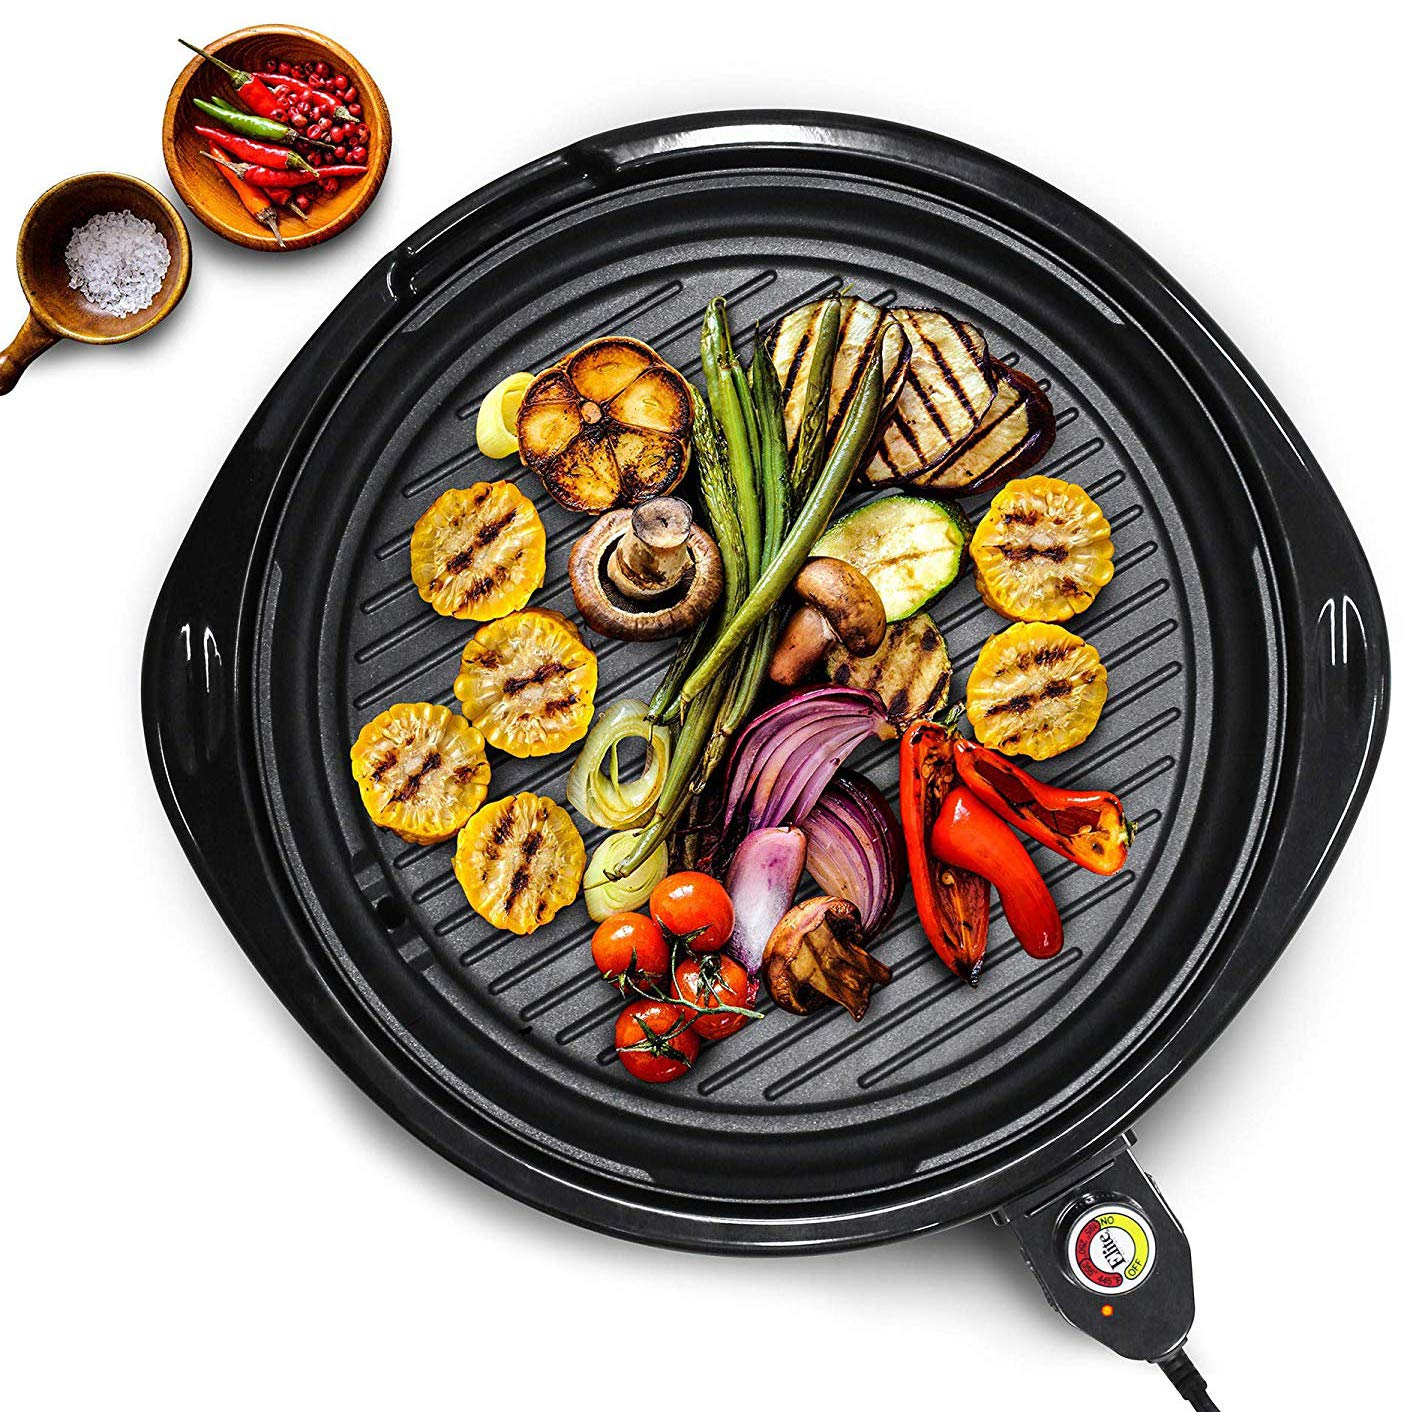 Maxi-Matic EMG-980B Indoor Electric Nonstick Grill Adjustable Thermostat, Dishwasher Safe, Faster Heat Up, Low-Fat Meals, Easy To Clean Design, Includes Glass Lid, 14'' Round, Black by Maxi-Matic